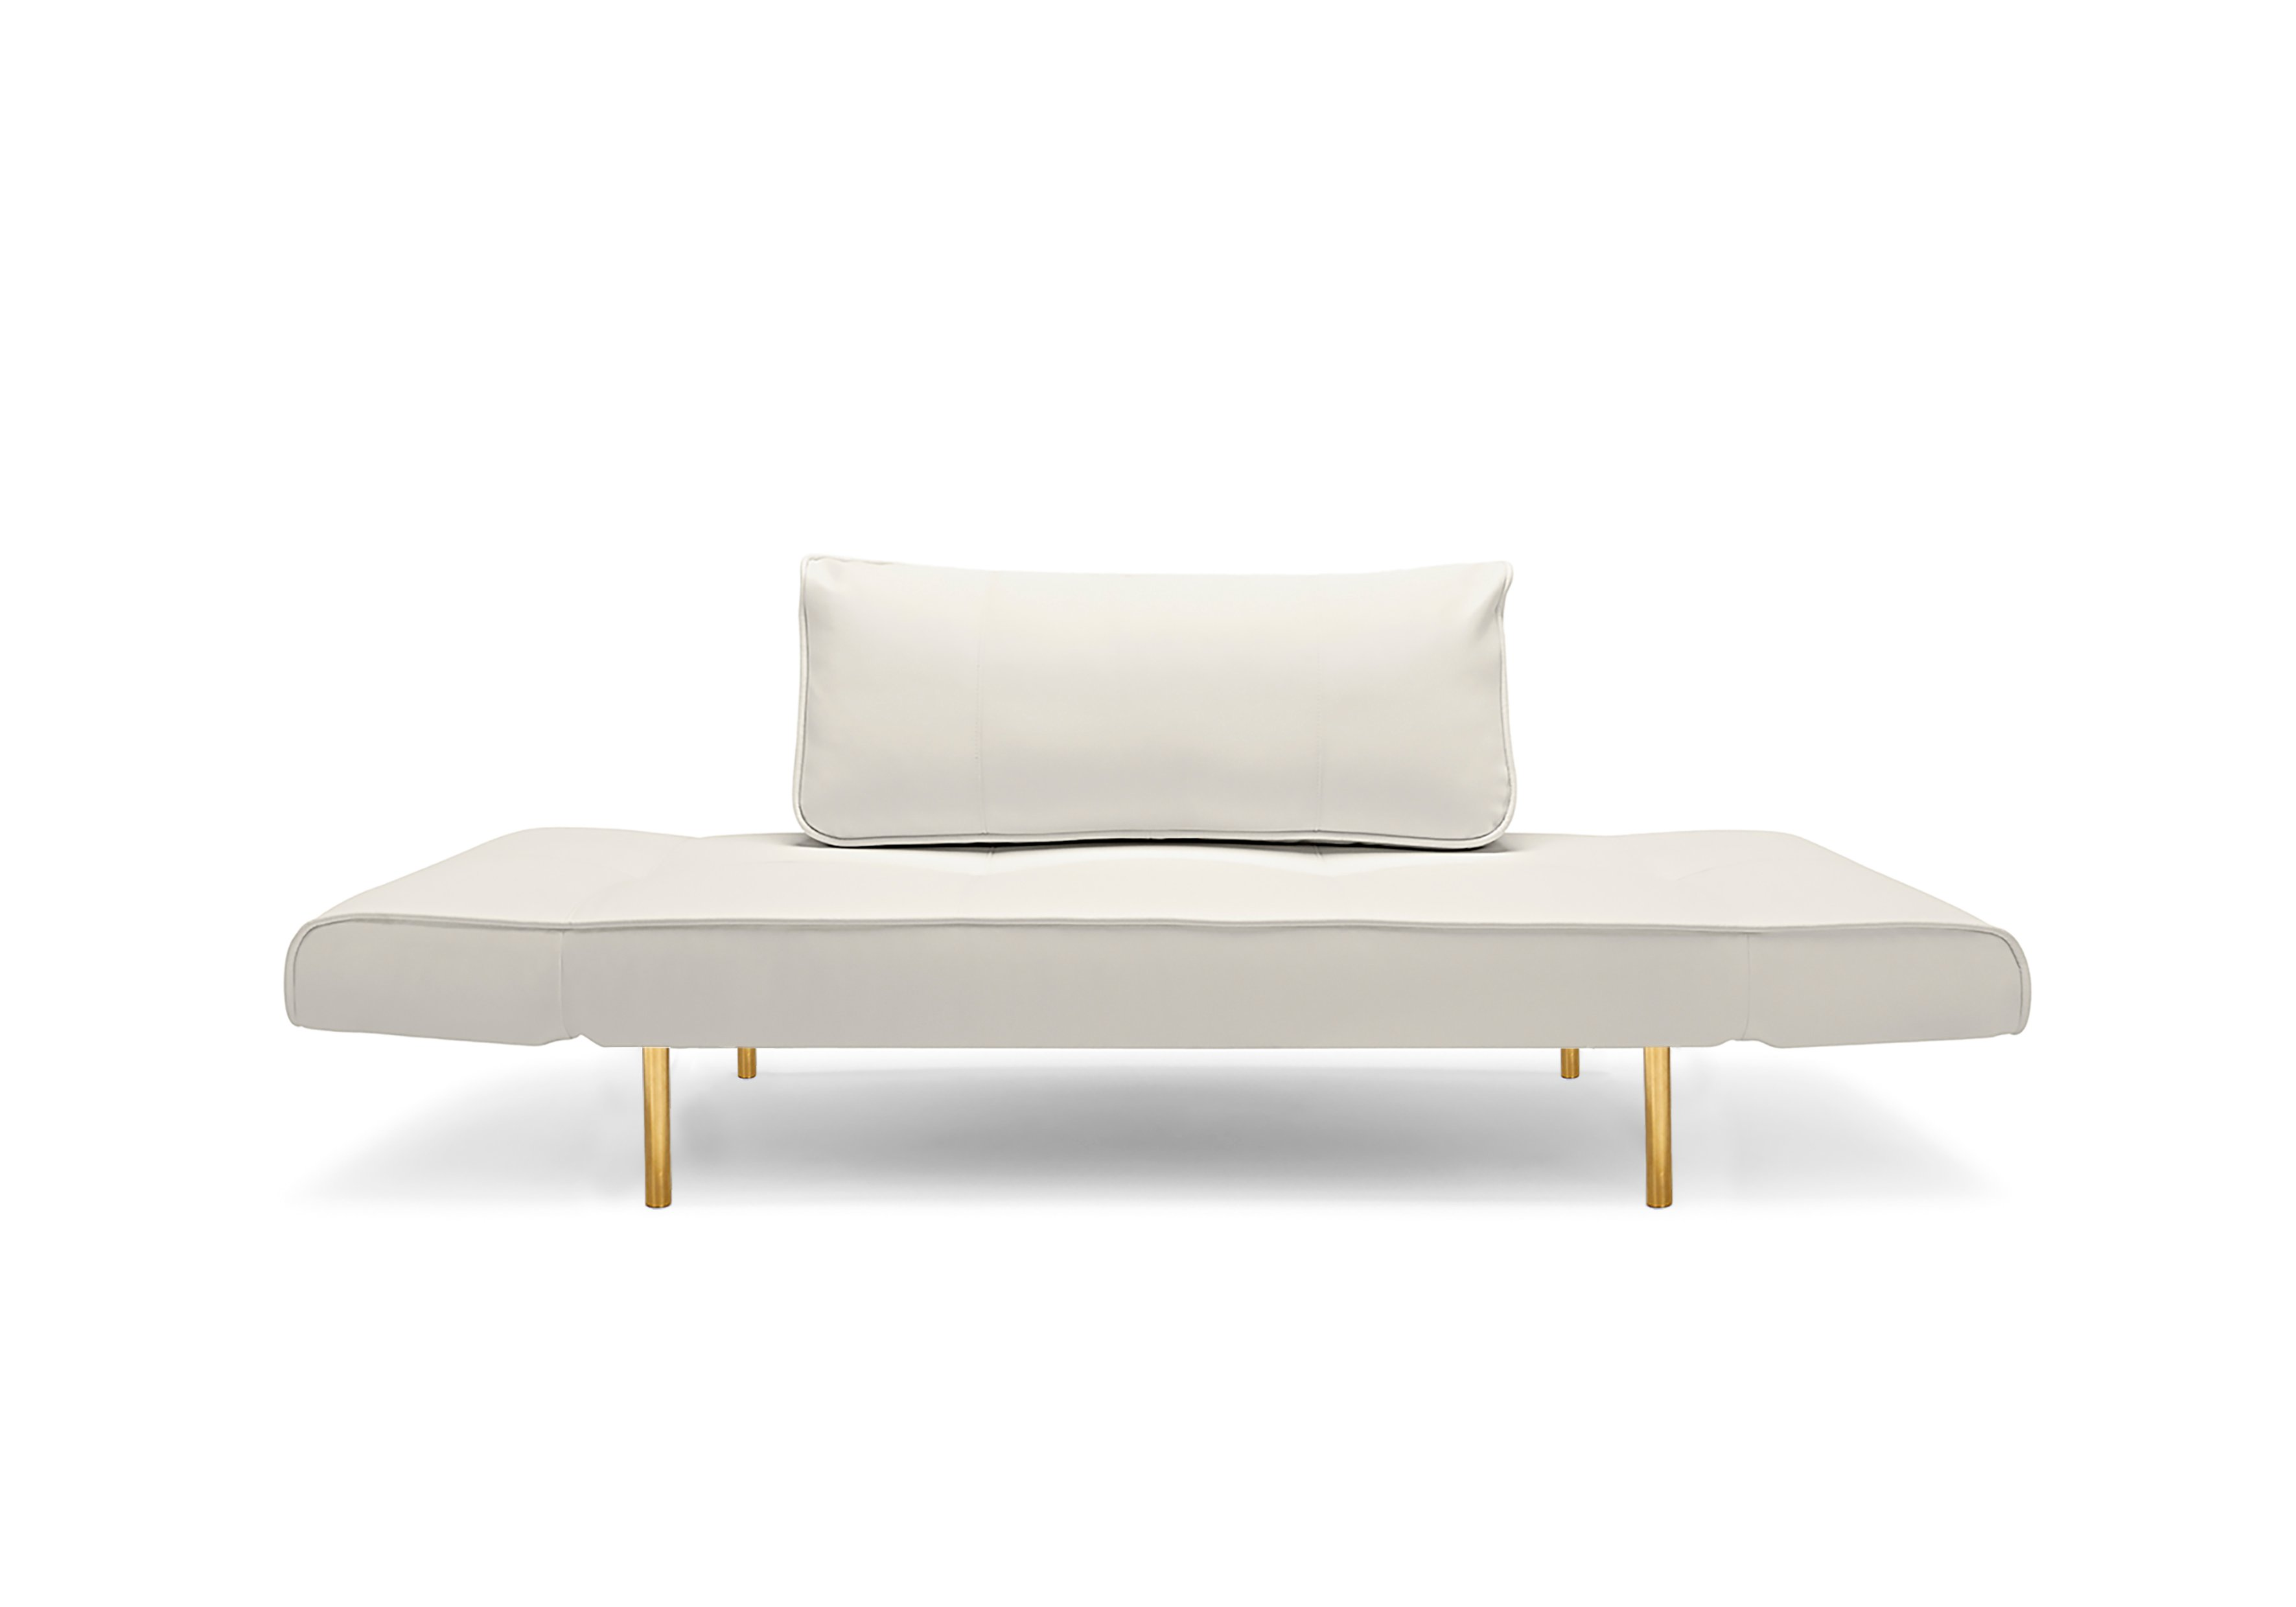 Zeal Deluxe Daybed White Leather Textile by Innovation